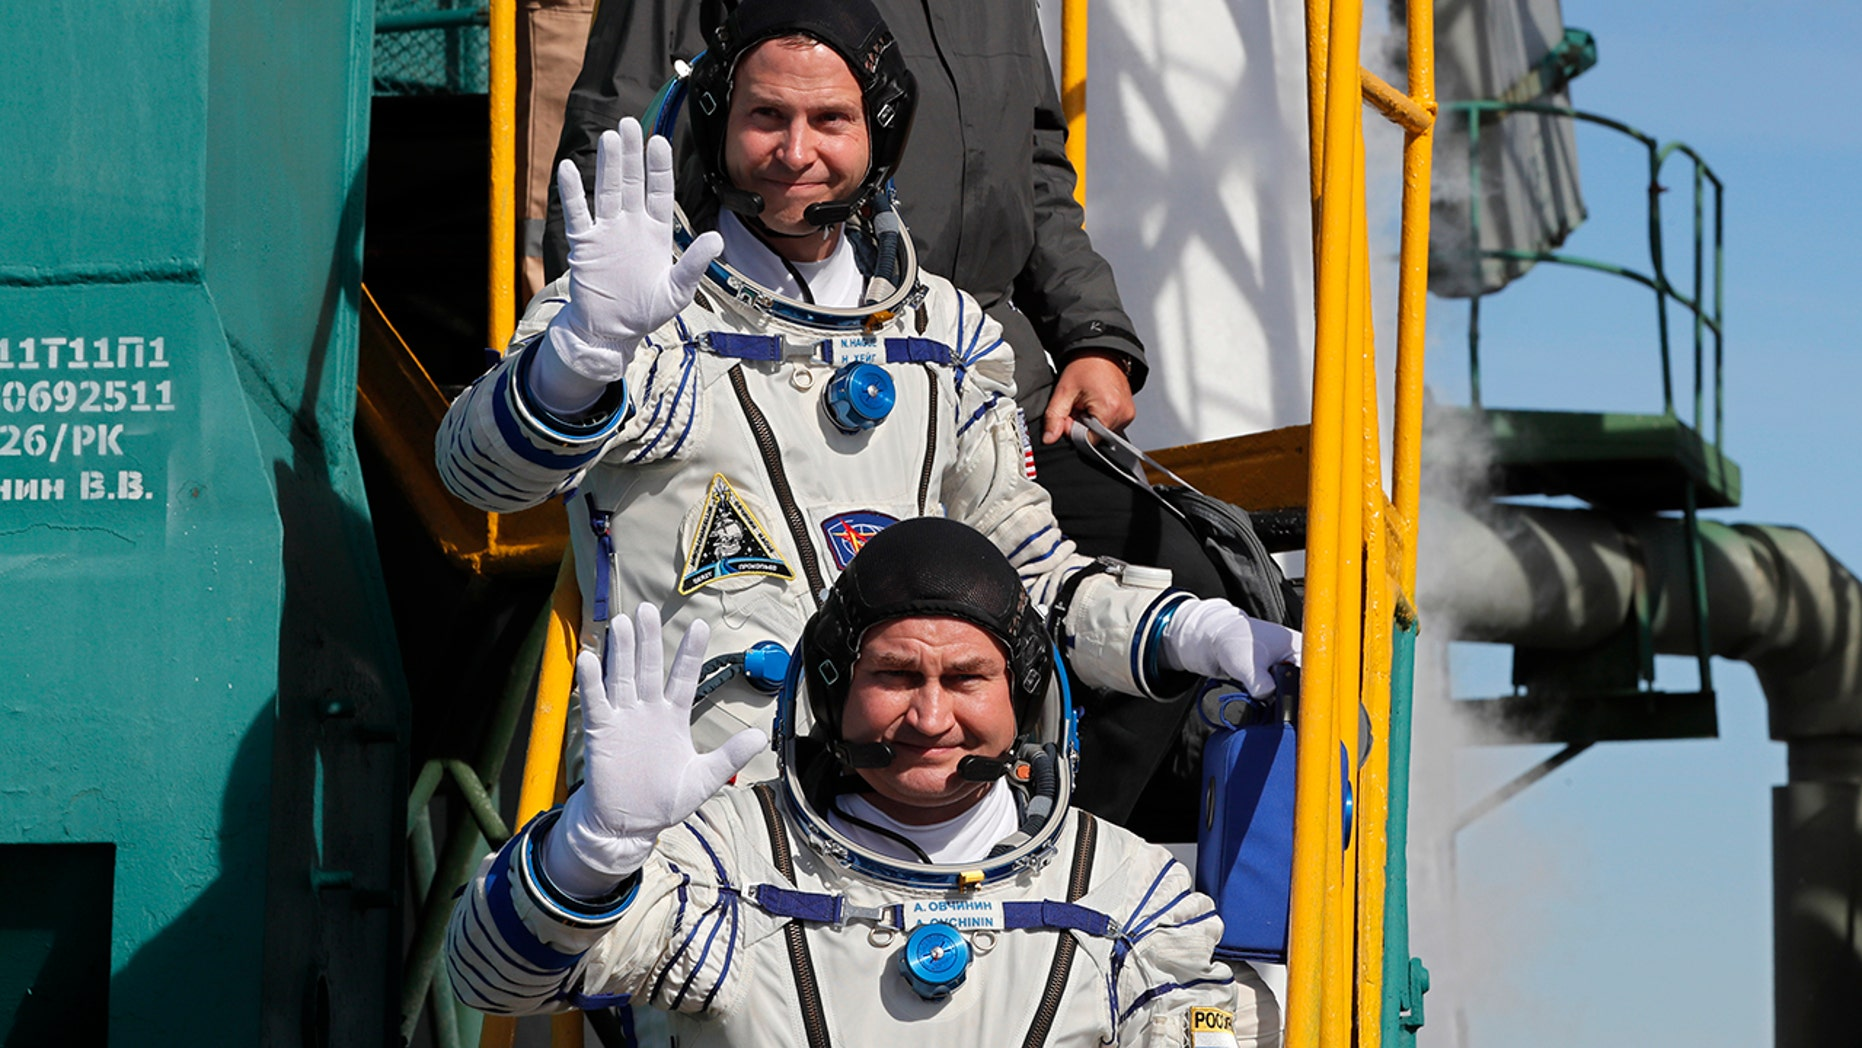 Astronauts 'in great shape' after emergency rocket landing